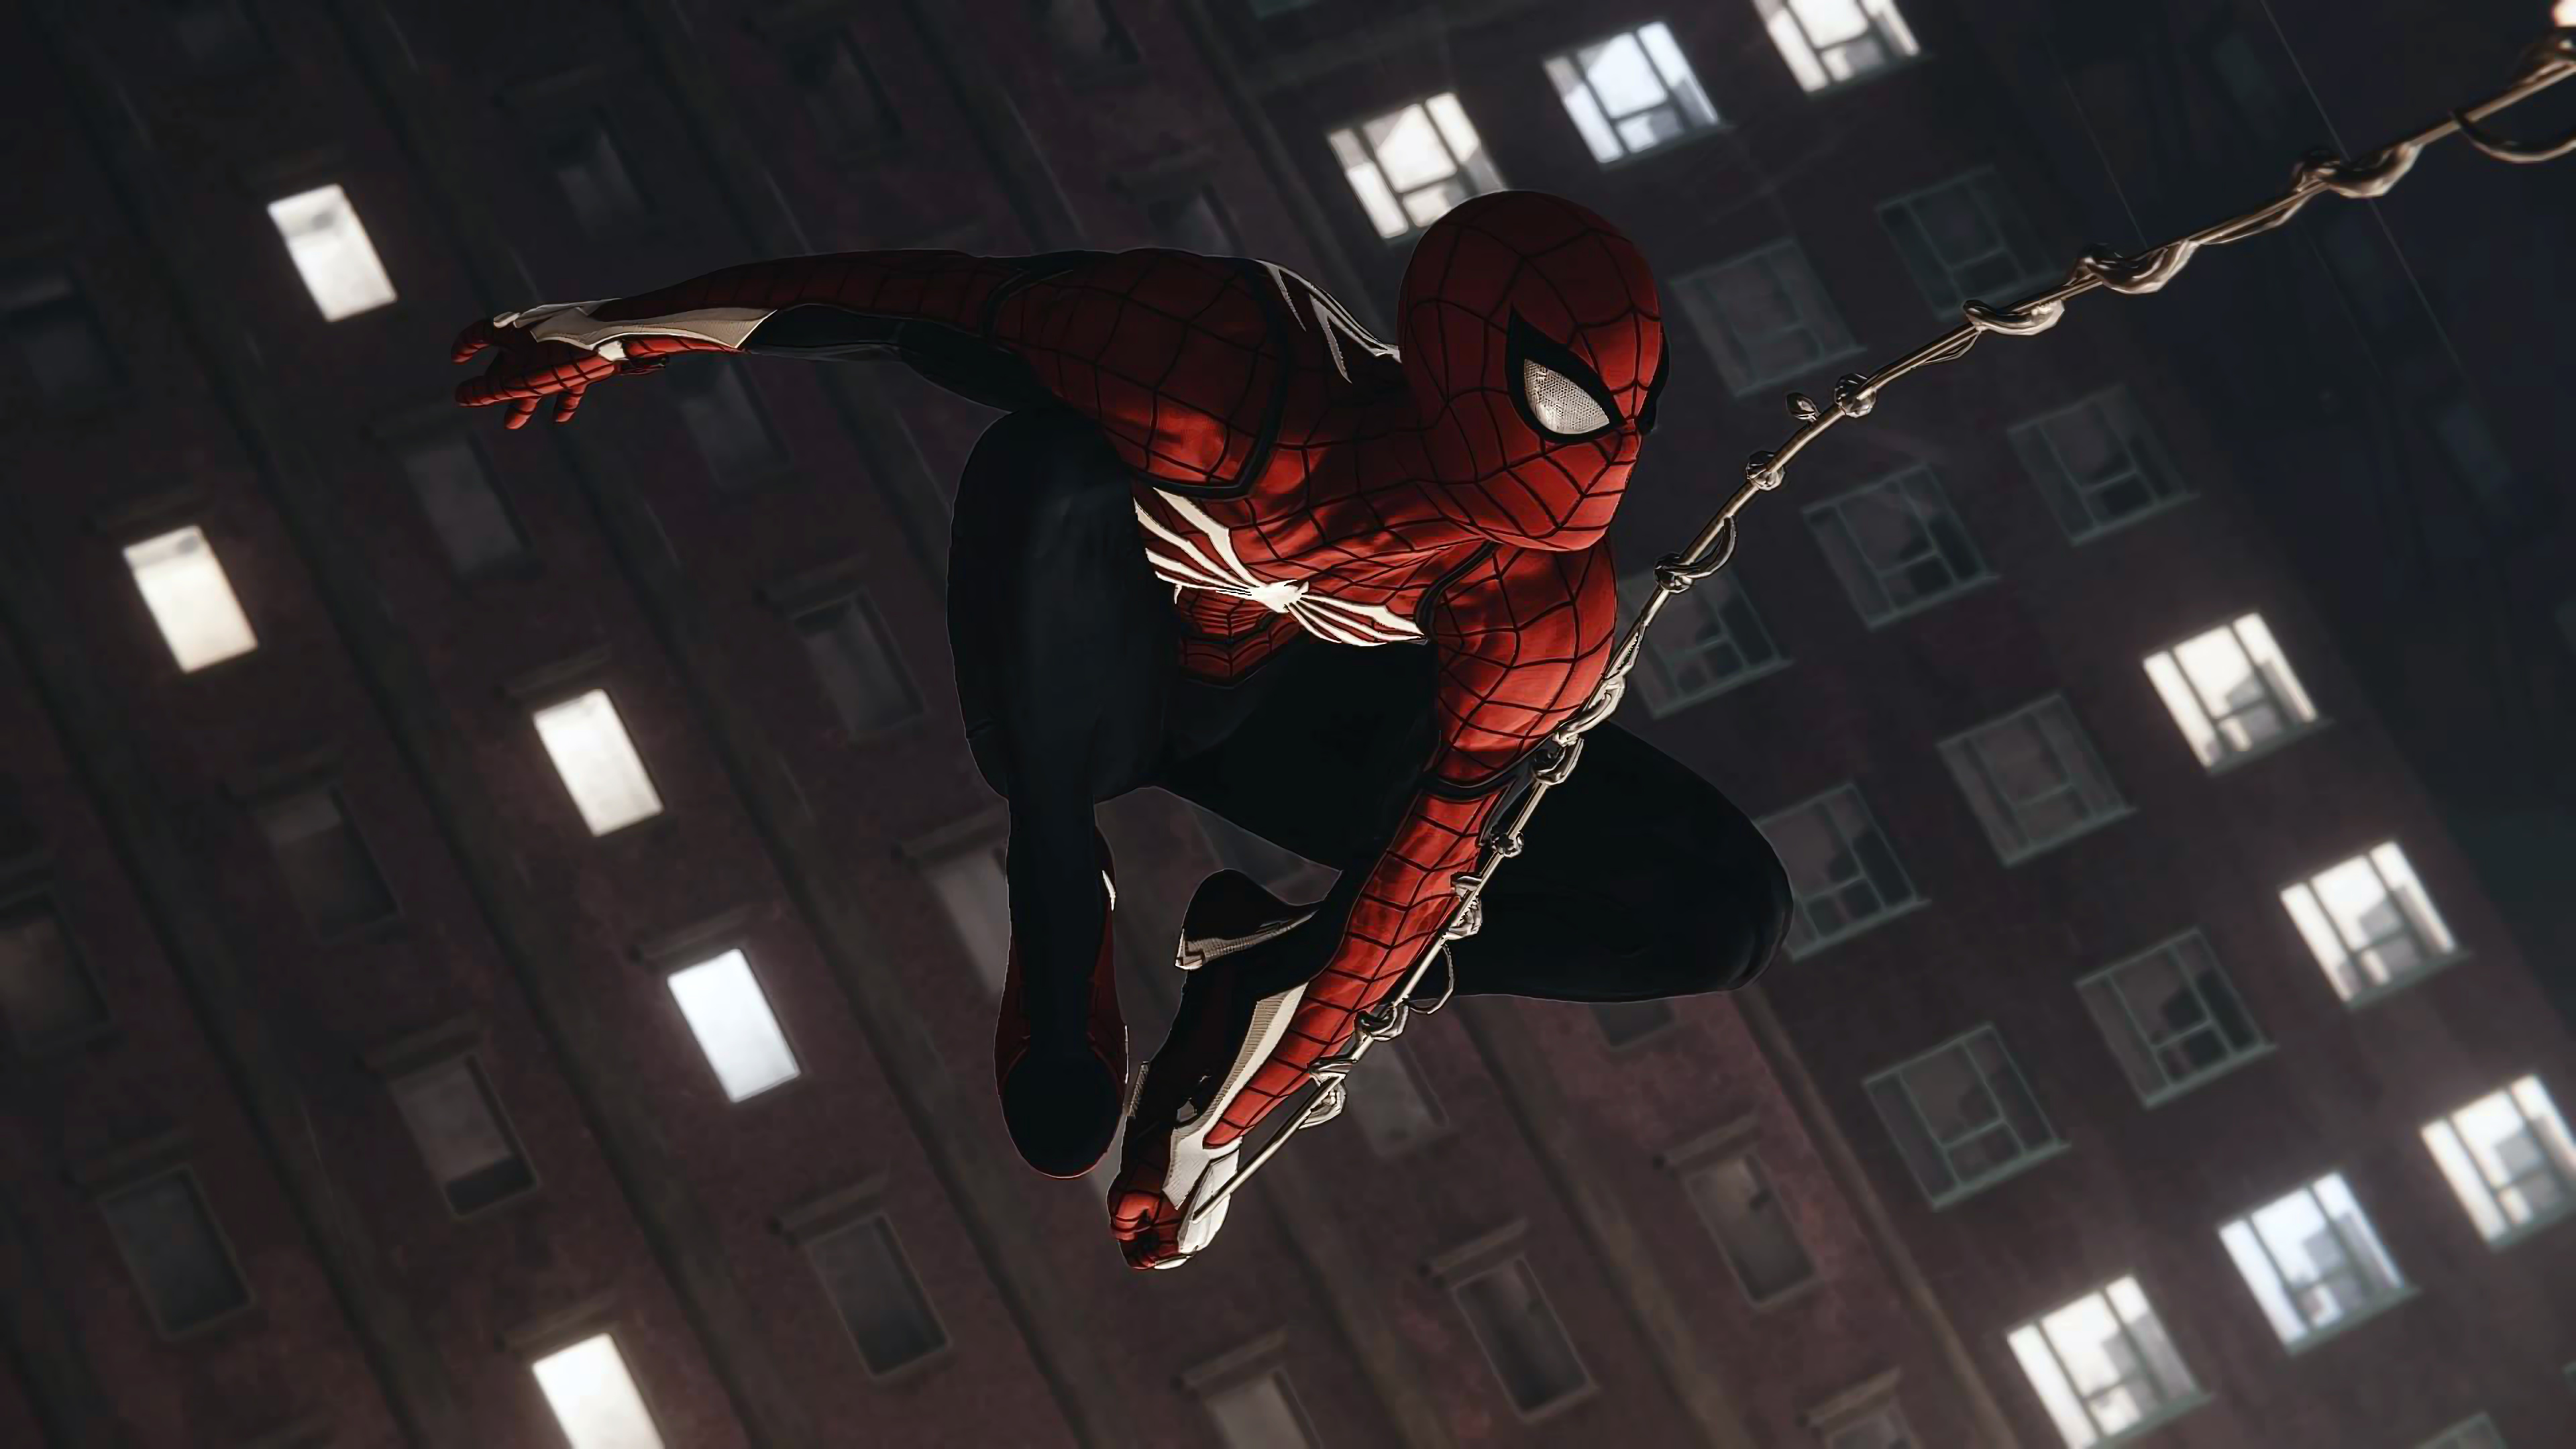 spiderman shooting spider web4k 1539452794 - Spiderman Shooting Spider Web4k - superheroes wallpapers, spiderman wallpapers, spiderman ps4 wallpapers, ps games wallpapers, hd-wallpapers, games wallpapers, 4k-wallpapers, 2018 games wallpapers